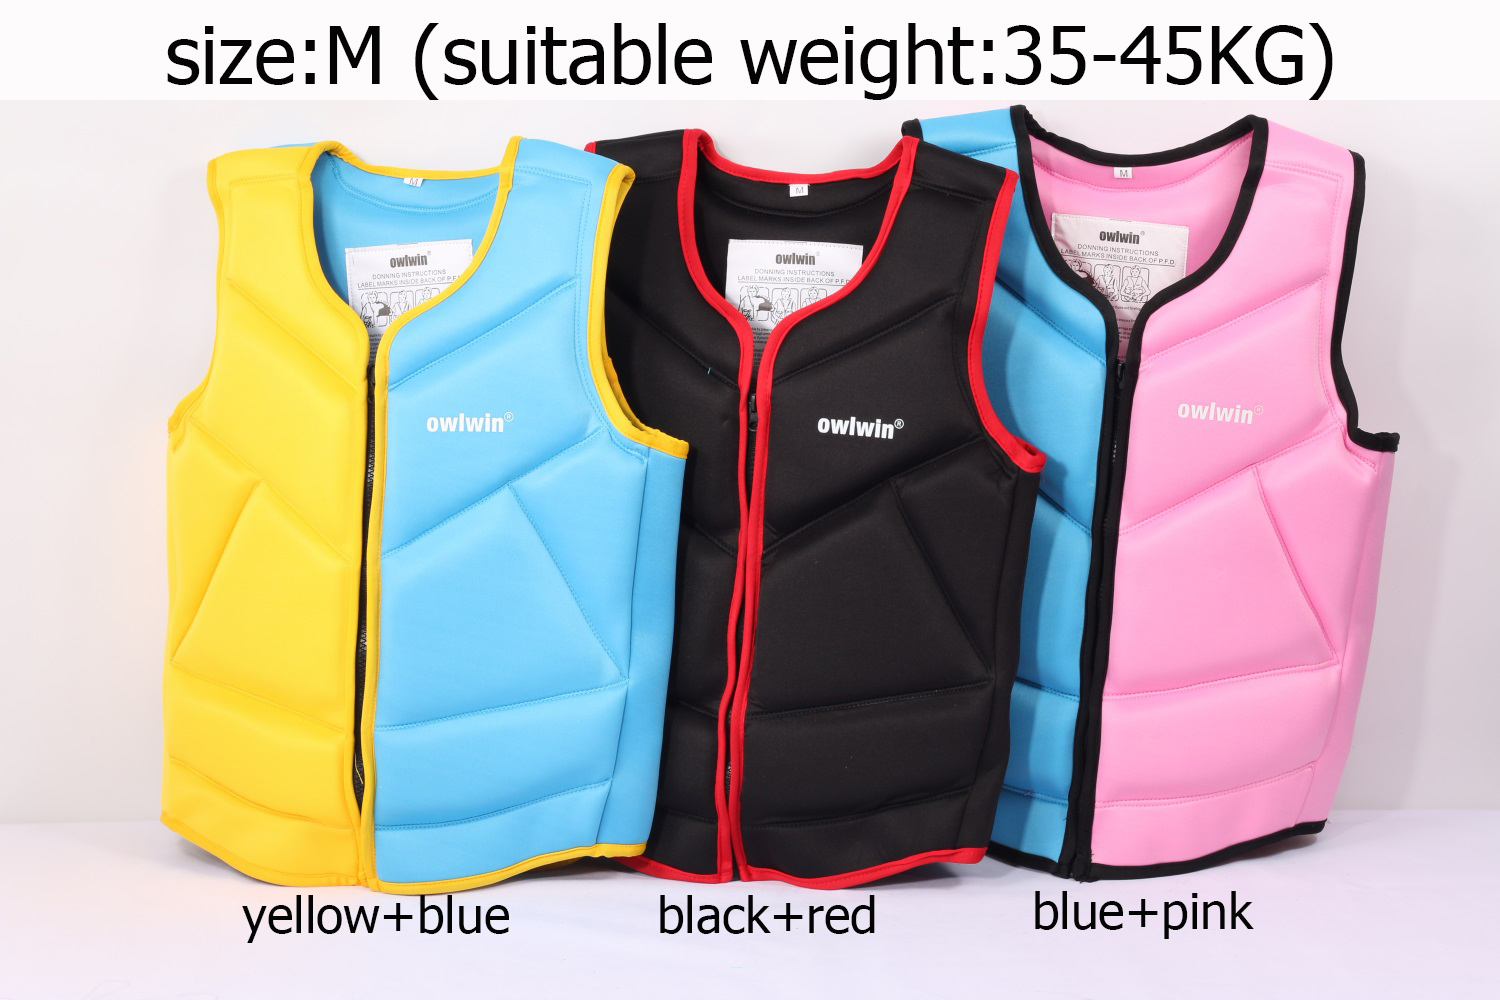 owlwin life jacket the fishing vest water jacket sports adult children life vest clothes swim skating ski rescue boats drifting